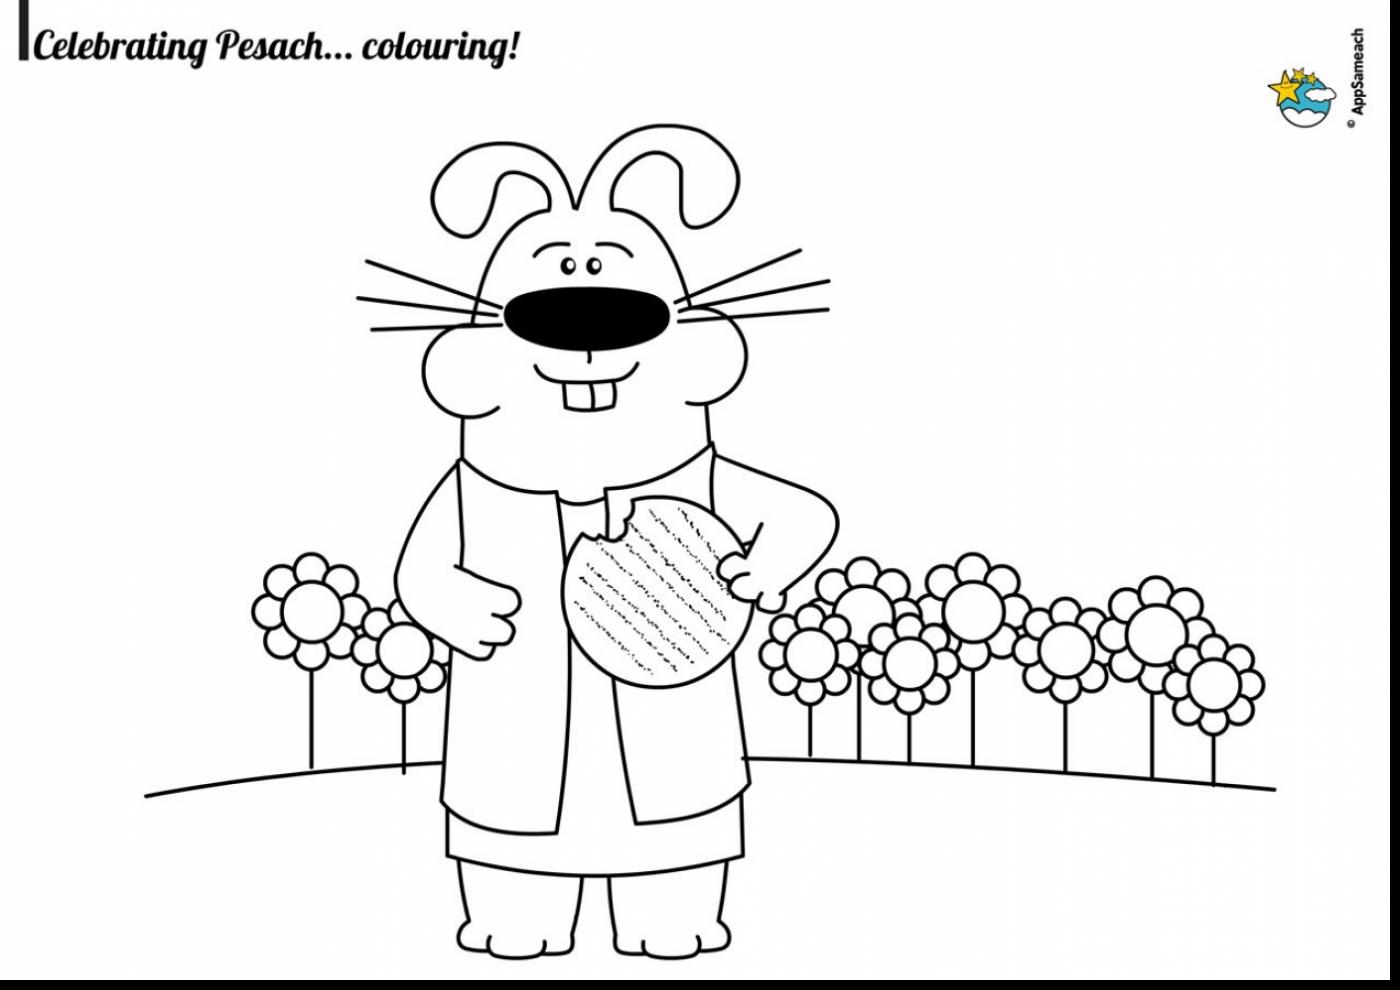 Passover Drawing at GetDrawings.com | Free for personal use Passover ...